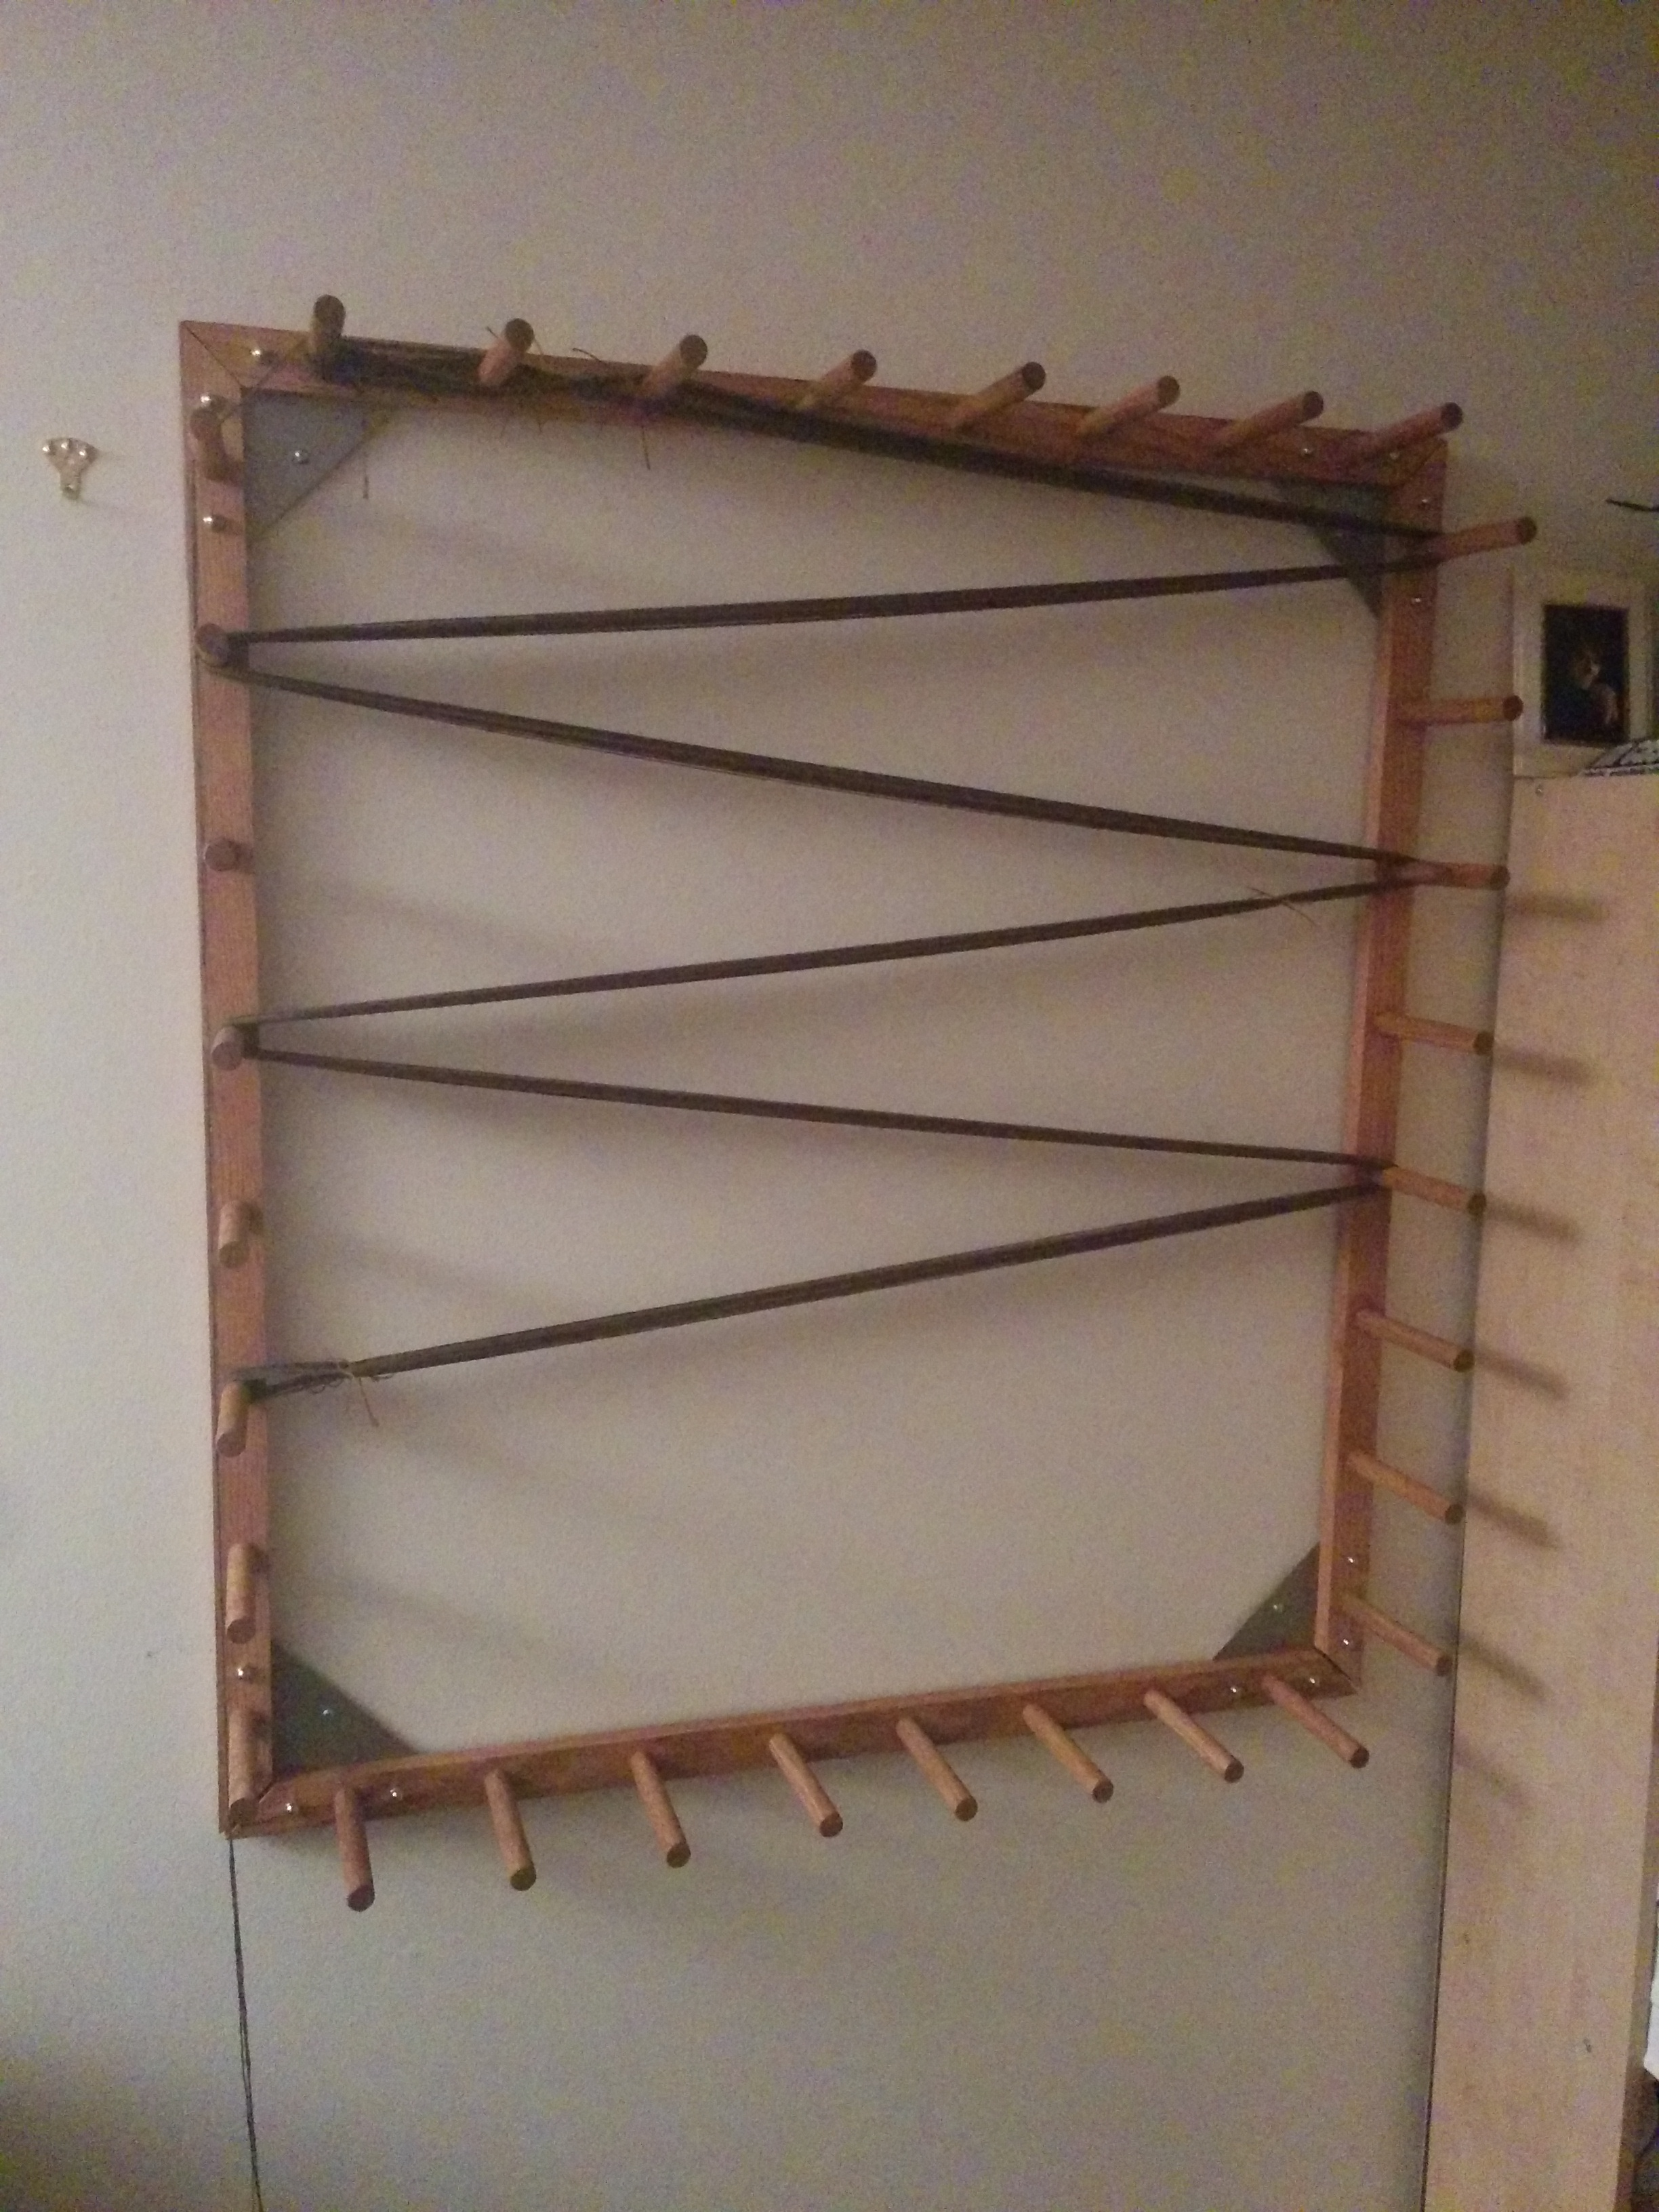 Picture of Warping Board Which Can Measure Both Yards and Meters